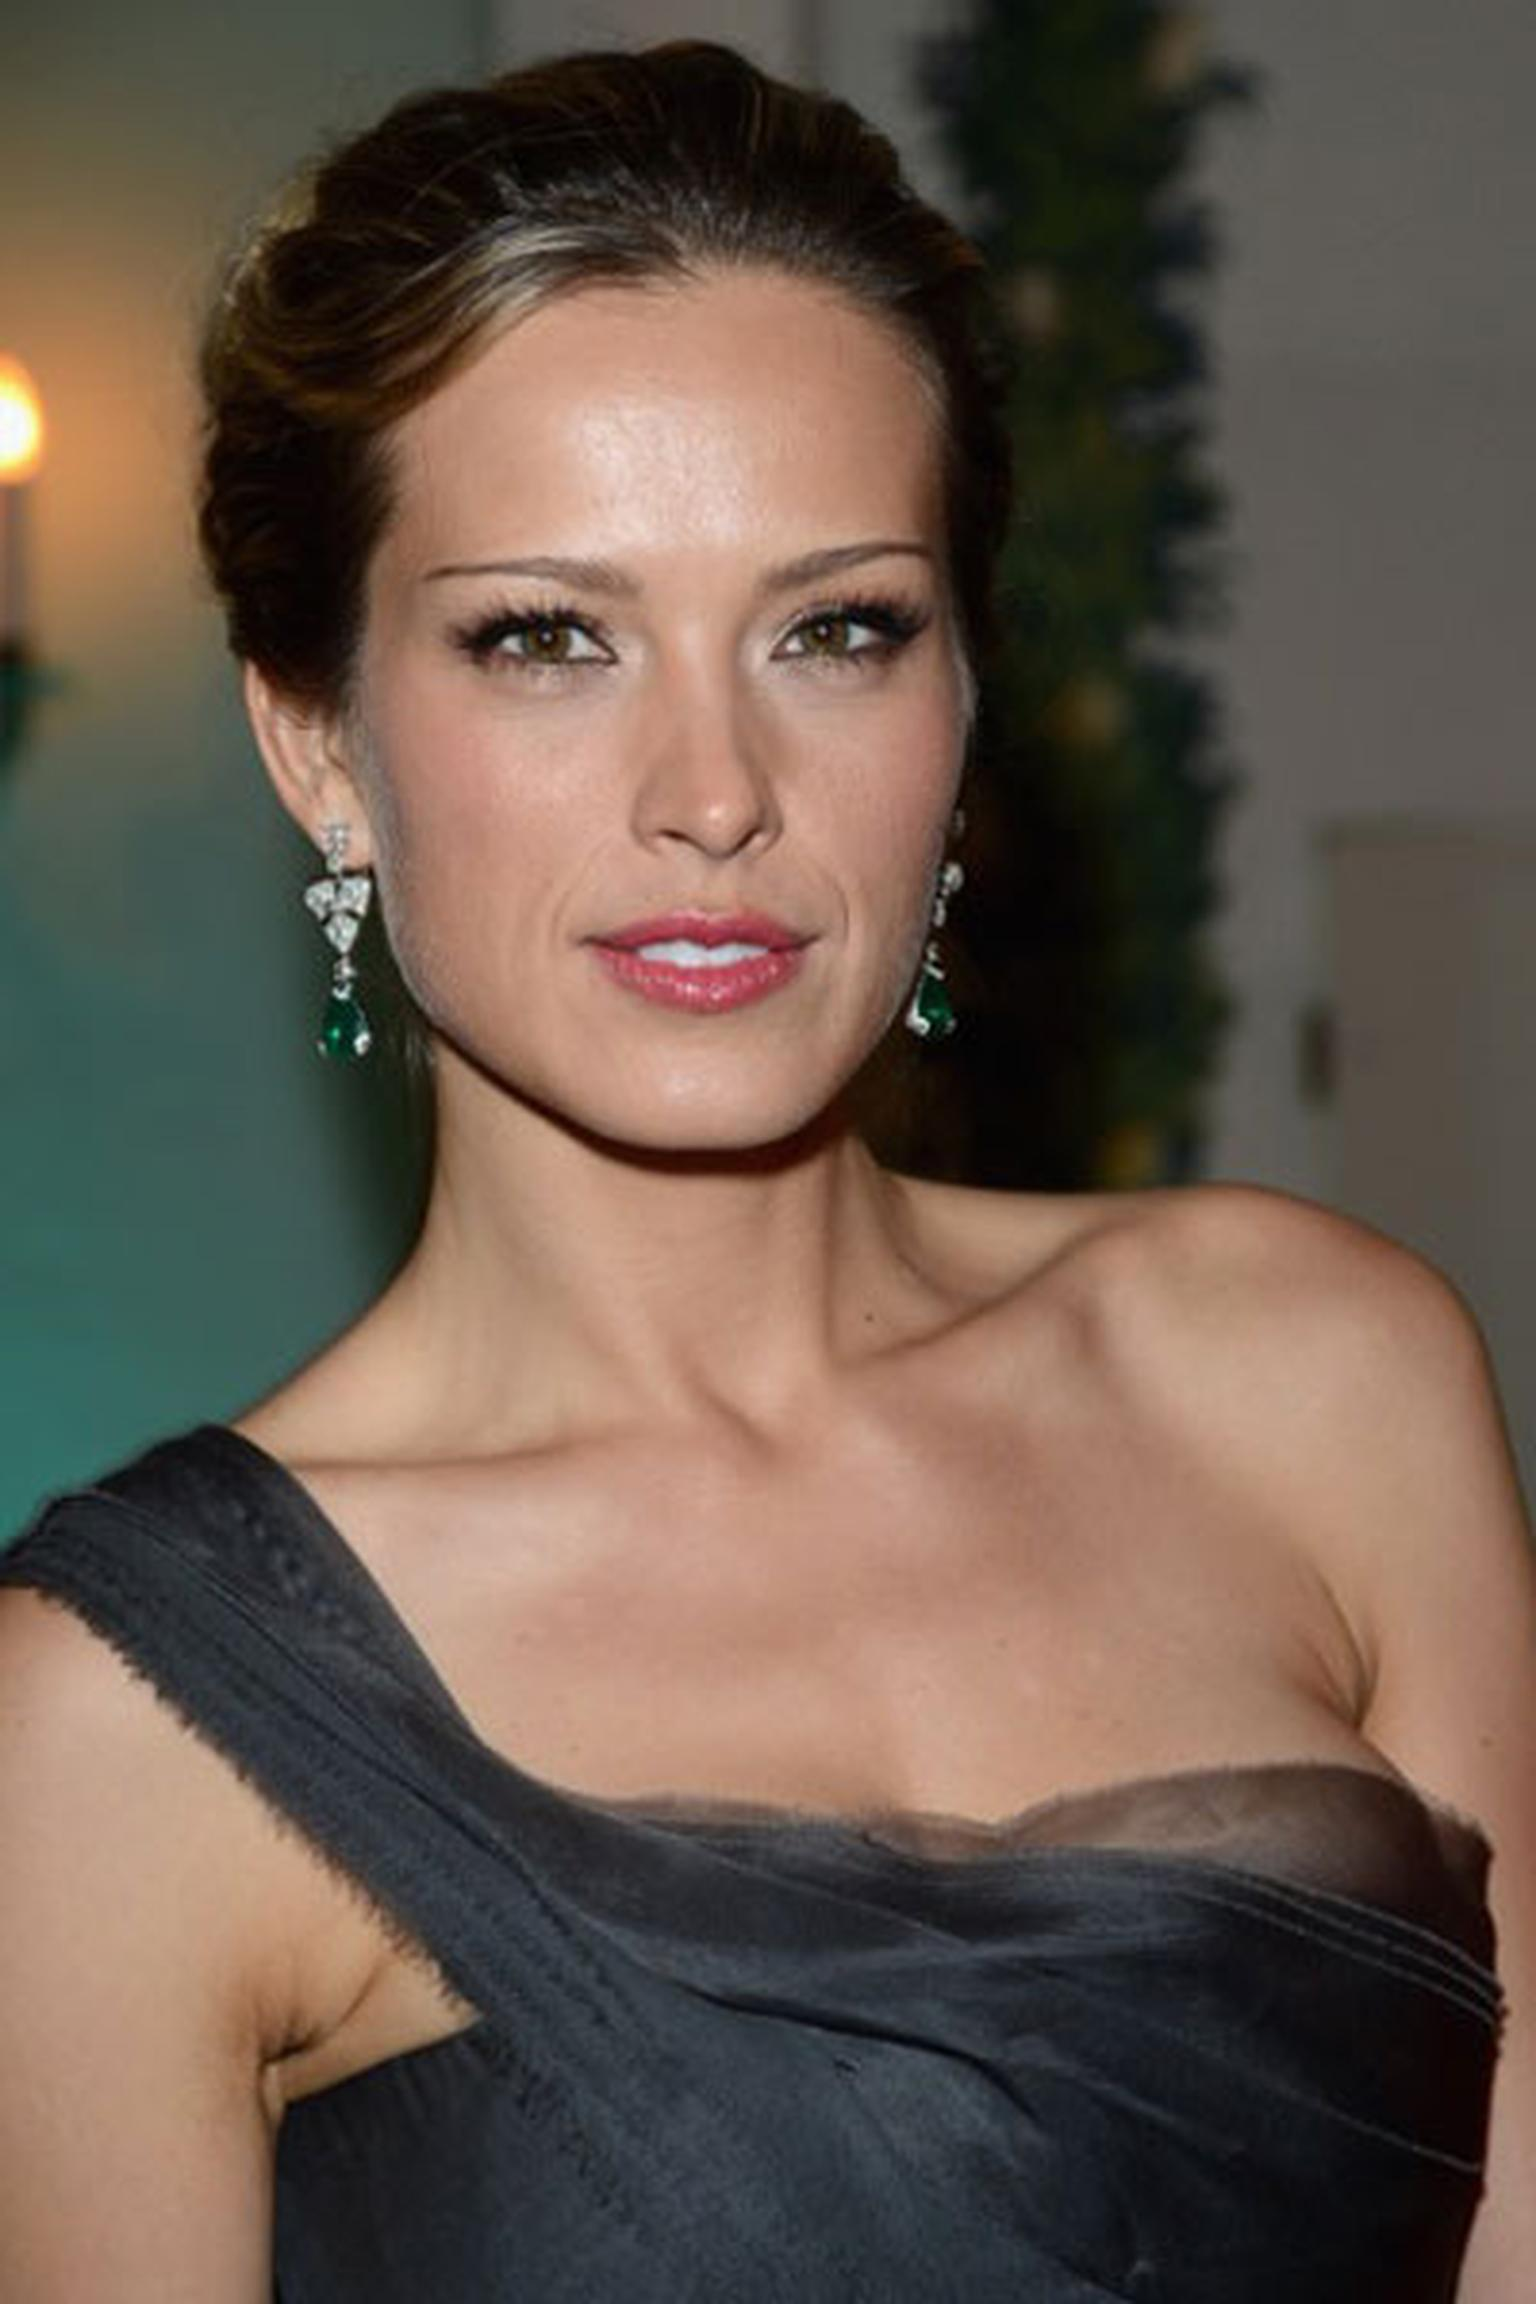 Petra-Nemcova-wearing-Avakian-diamond-and-emerald-earrings.jpg